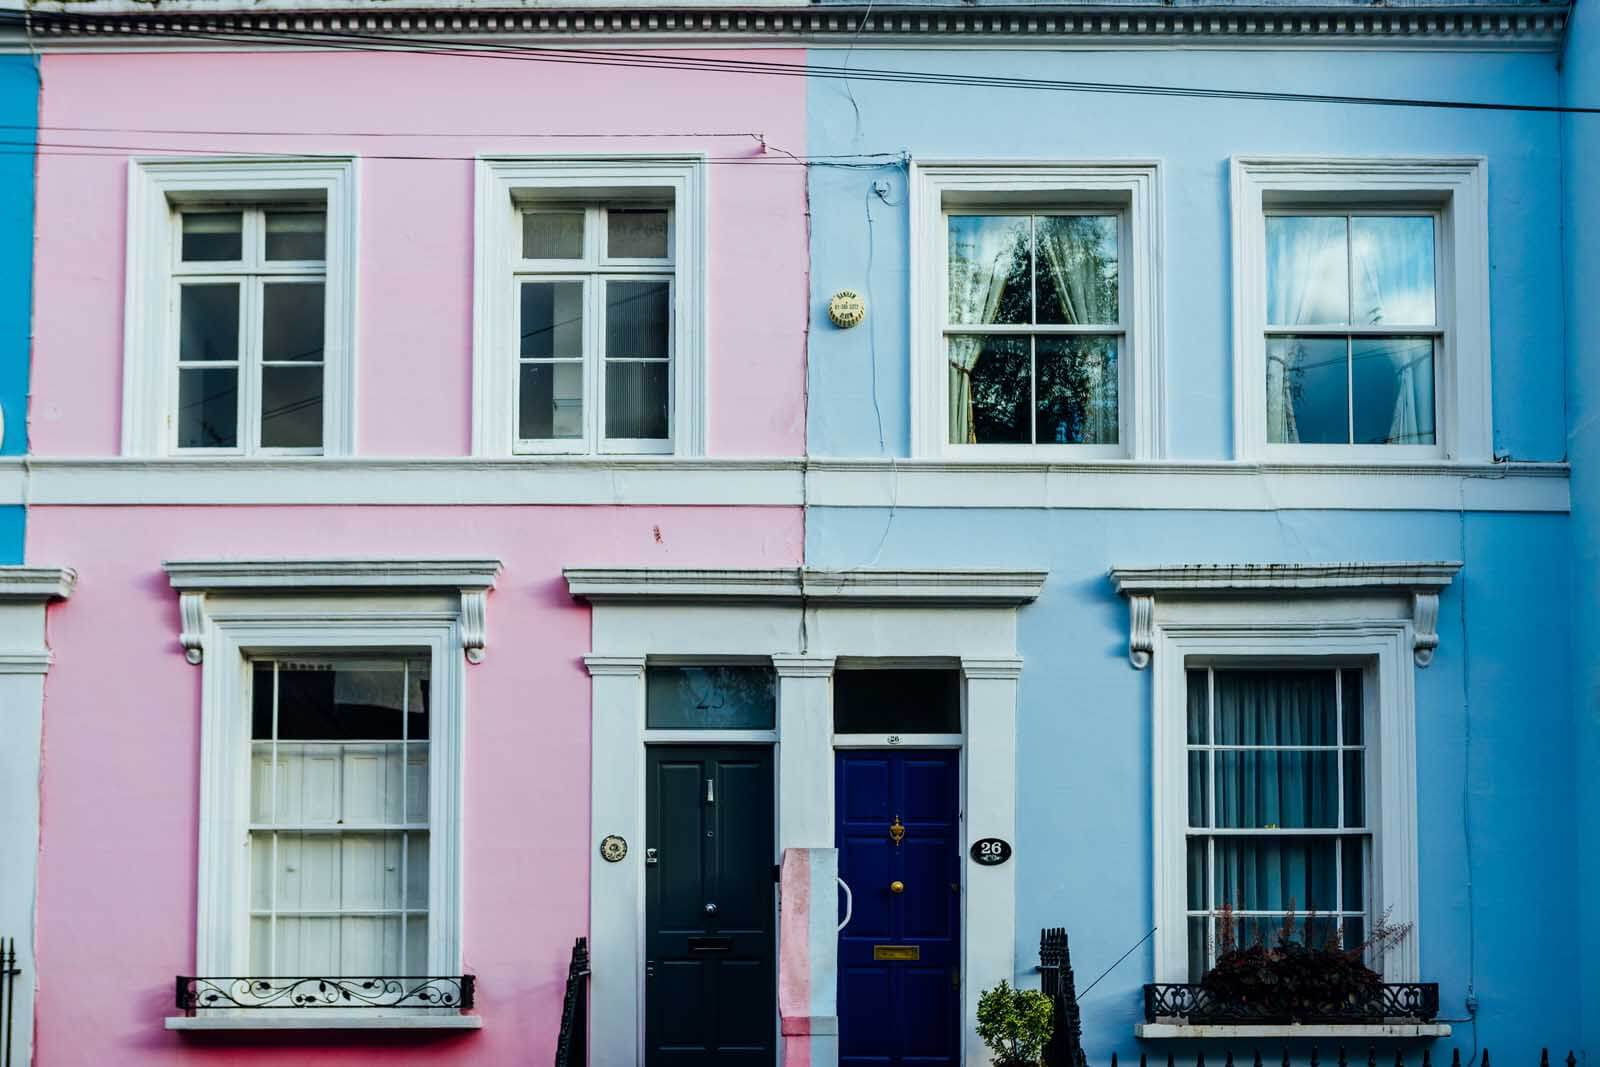 colorful houses on Denbigh Terrace in Notting Hill in London